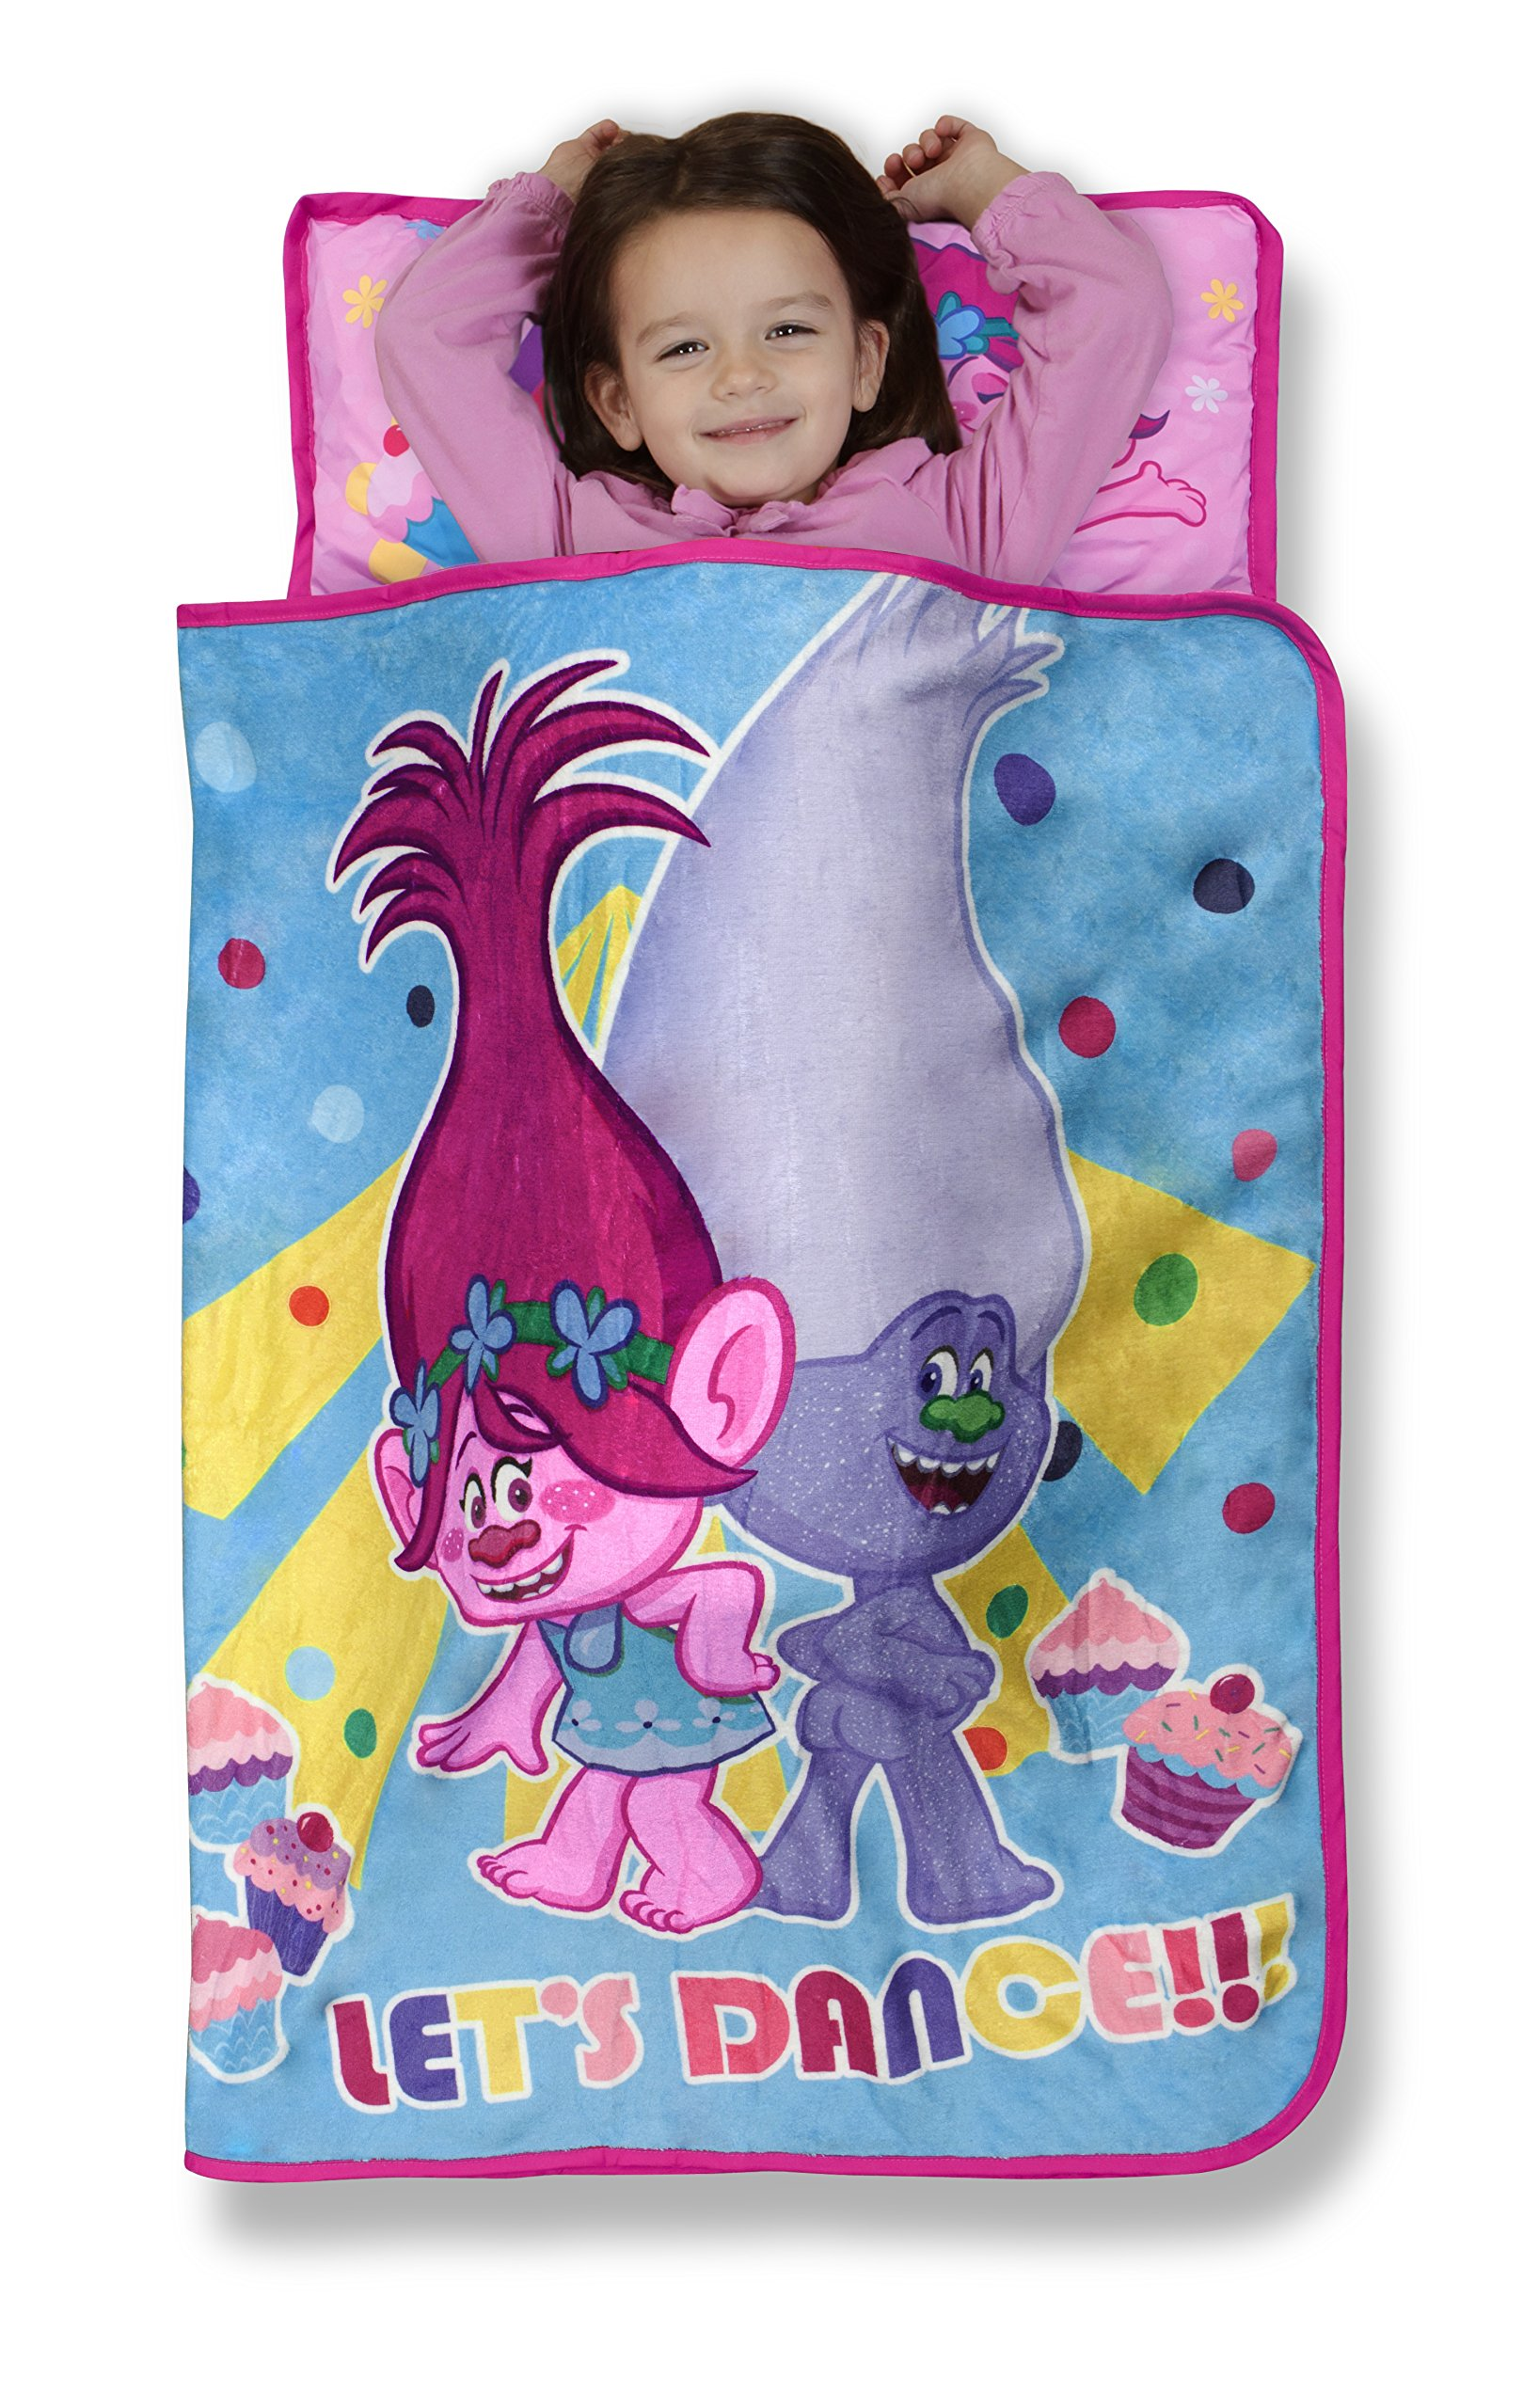 Trolls Cupcakes and Rainbows Toddler Nap Mat - Includes Pillow & Fleece Blanket - Great for Boys and Girls Napping at Daycare, Preschool, Or Kindergarten - Fits Sleeping Toddlers and Young Children by Trolls